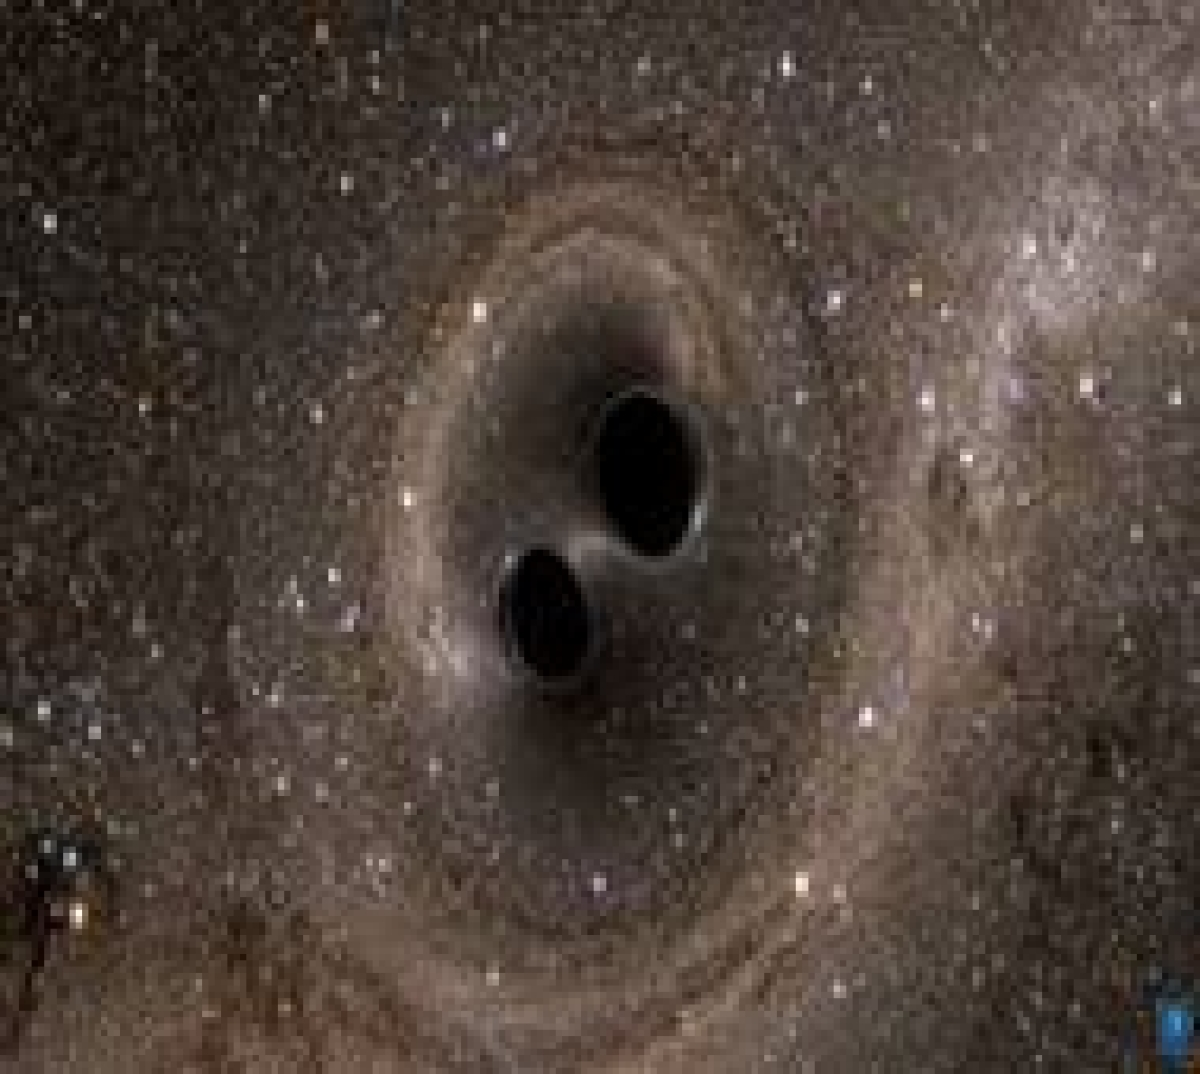 Gravitational waves detected from new blackhole: Study